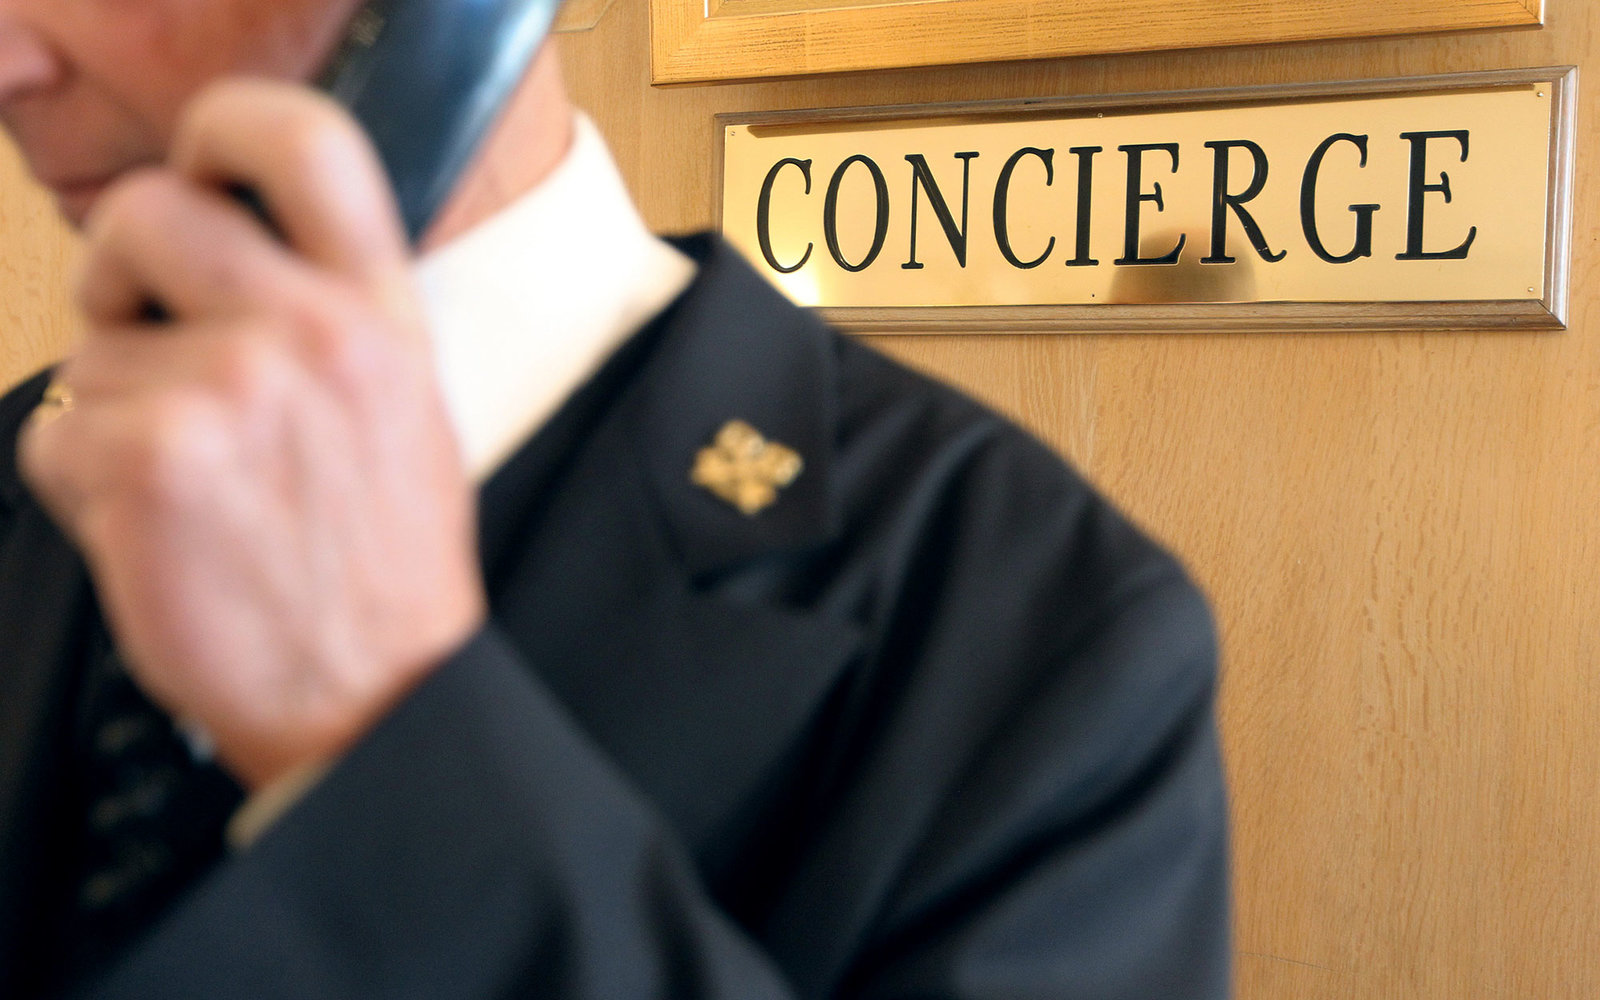 A concierge of a luxury hotel takes a reservation on January 4, 2013 in Cannes, southeastern France.  AFP PHOTO / JEAN CHRISTOPHE MAGNENET        (Photo credit should read JEAN CHRISTOPHE MAGNENET/AFP/Getty Images)